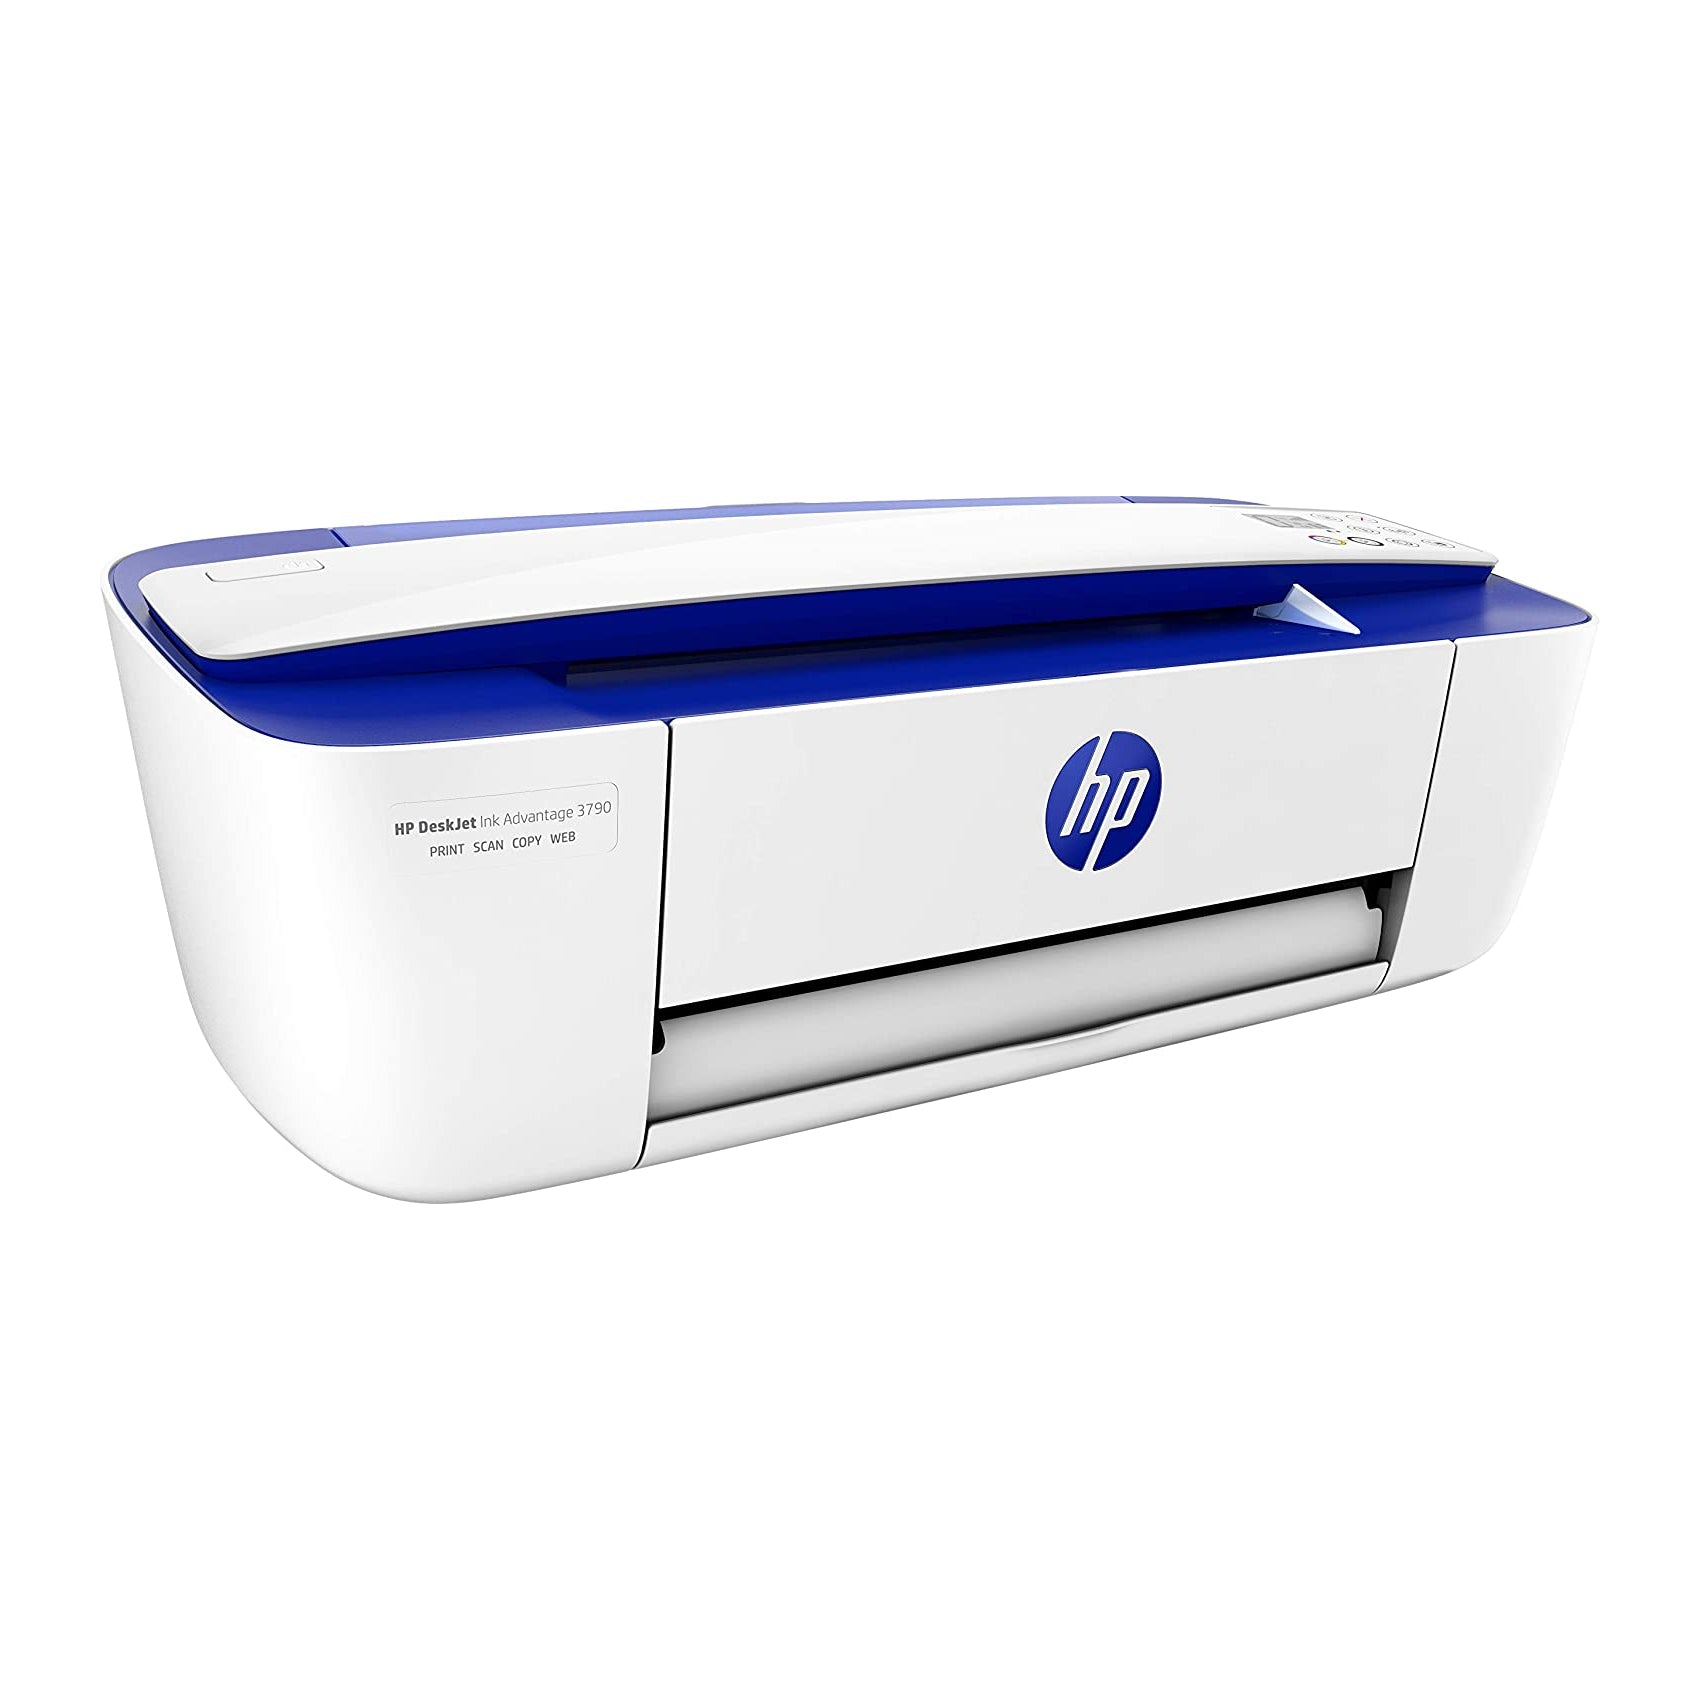 Printer HP DeskJet Ink Advantage 3790 All-in-One